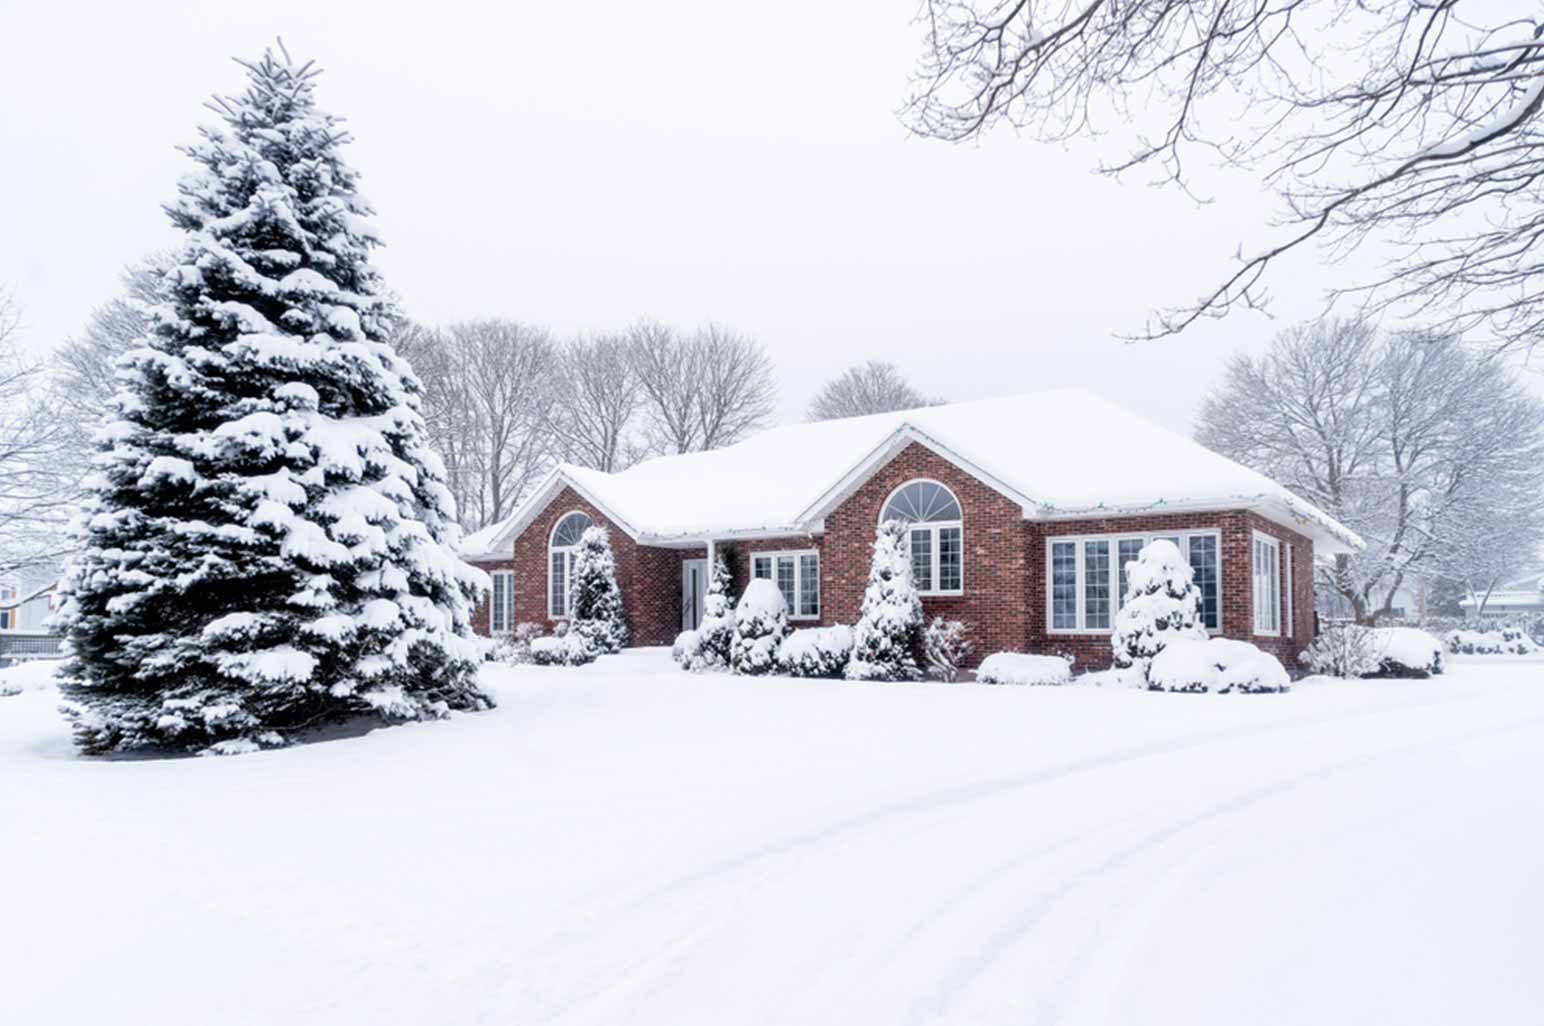 Restoring Your Yard After Winter - Snowfall